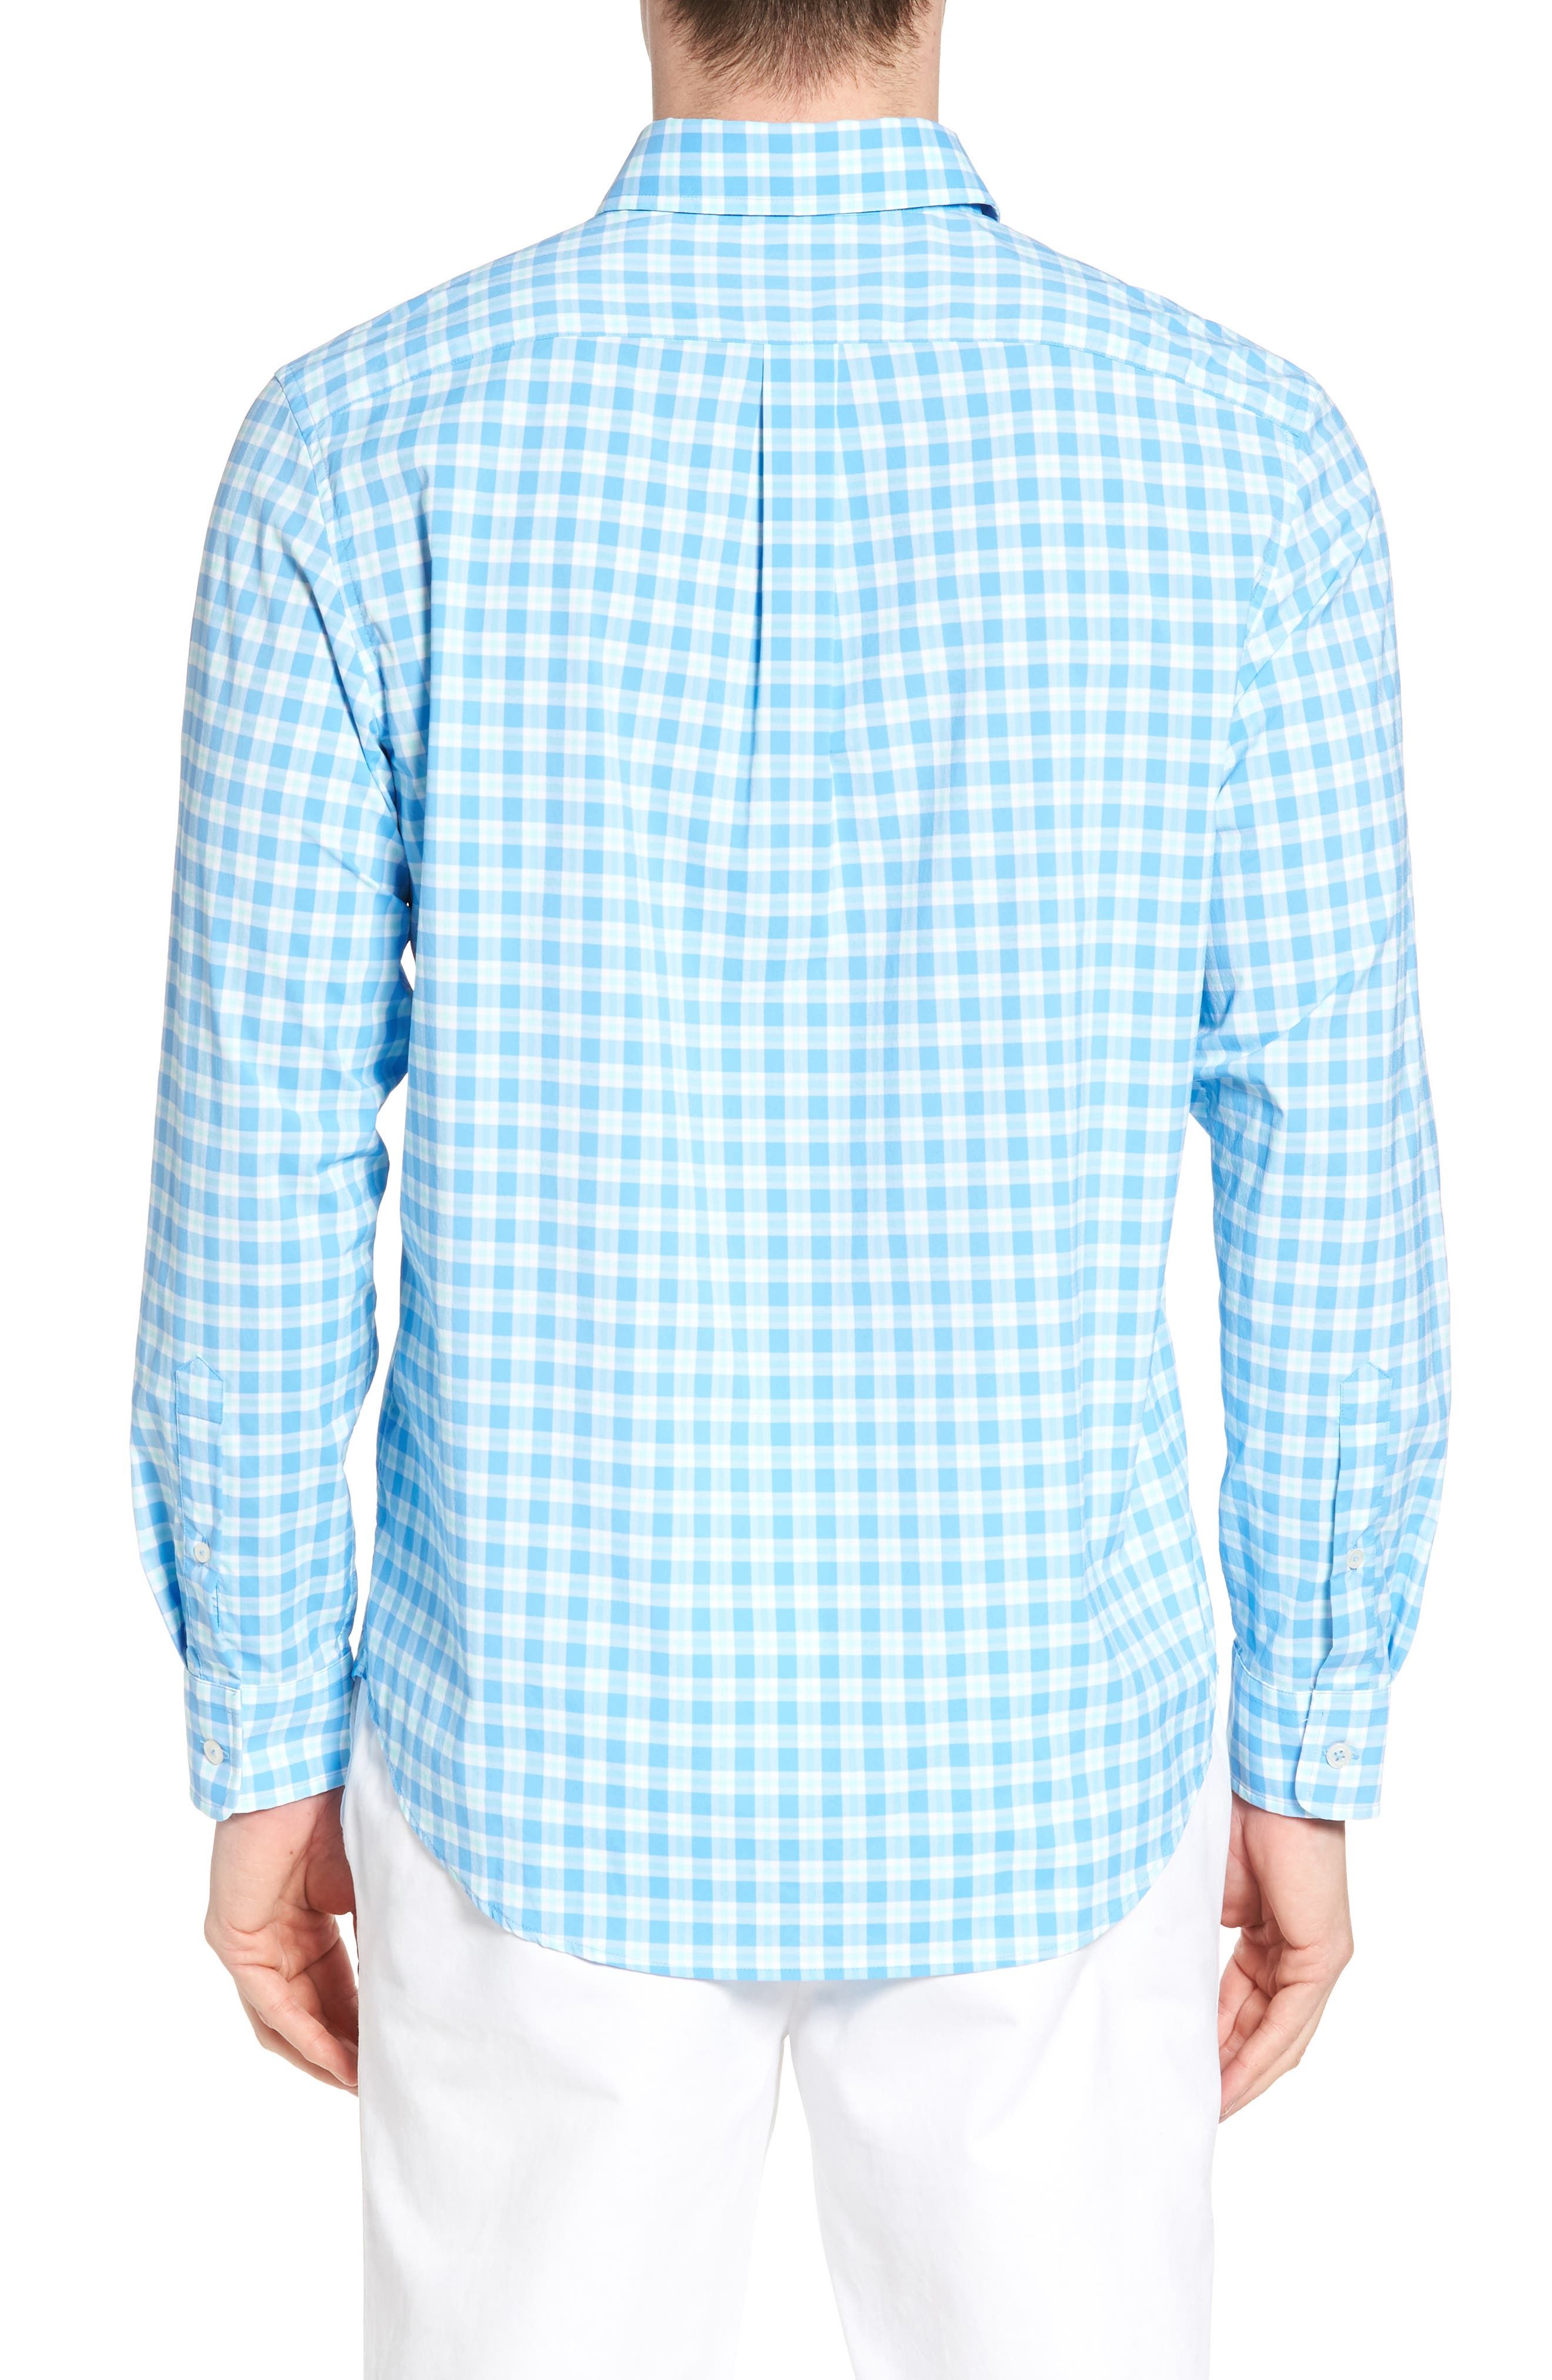 Ocean Beach Classic Fit Stretch Check Sport Shirt,                             Alternate thumbnail 2, color,                             484